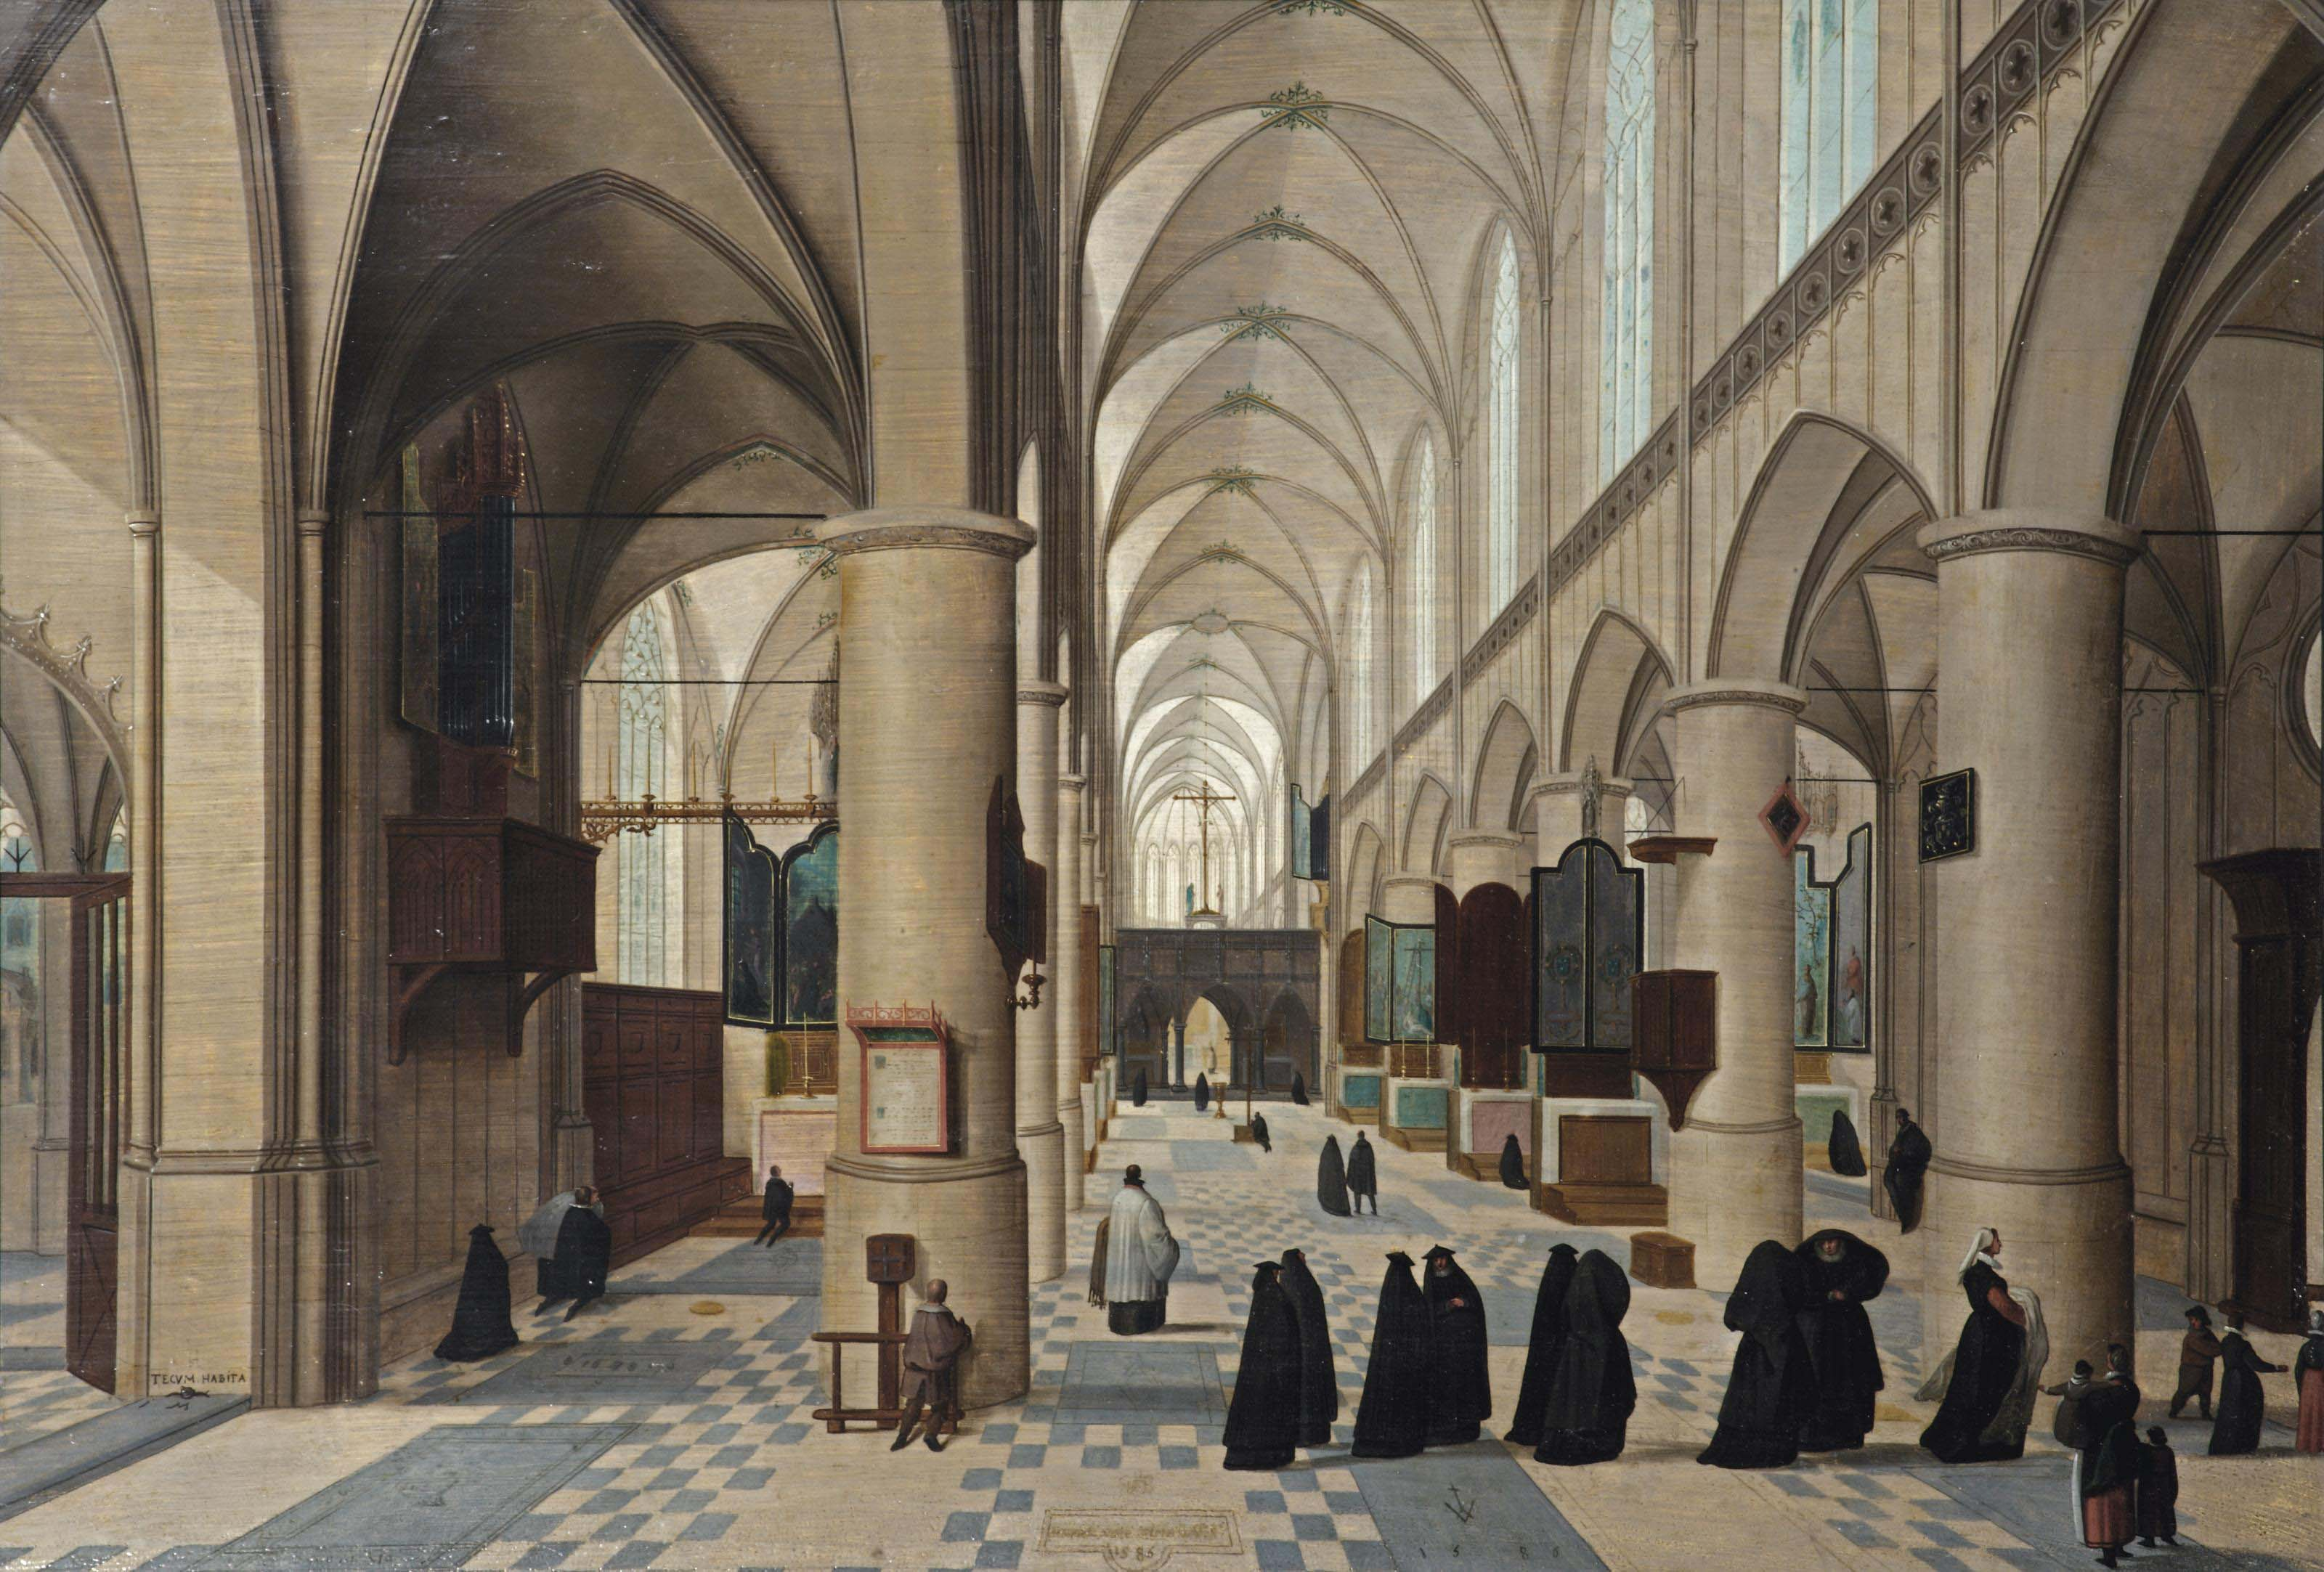 The interior of a Gothic church with figures walking through the isle, probably a christening procession, other figures praying in the background